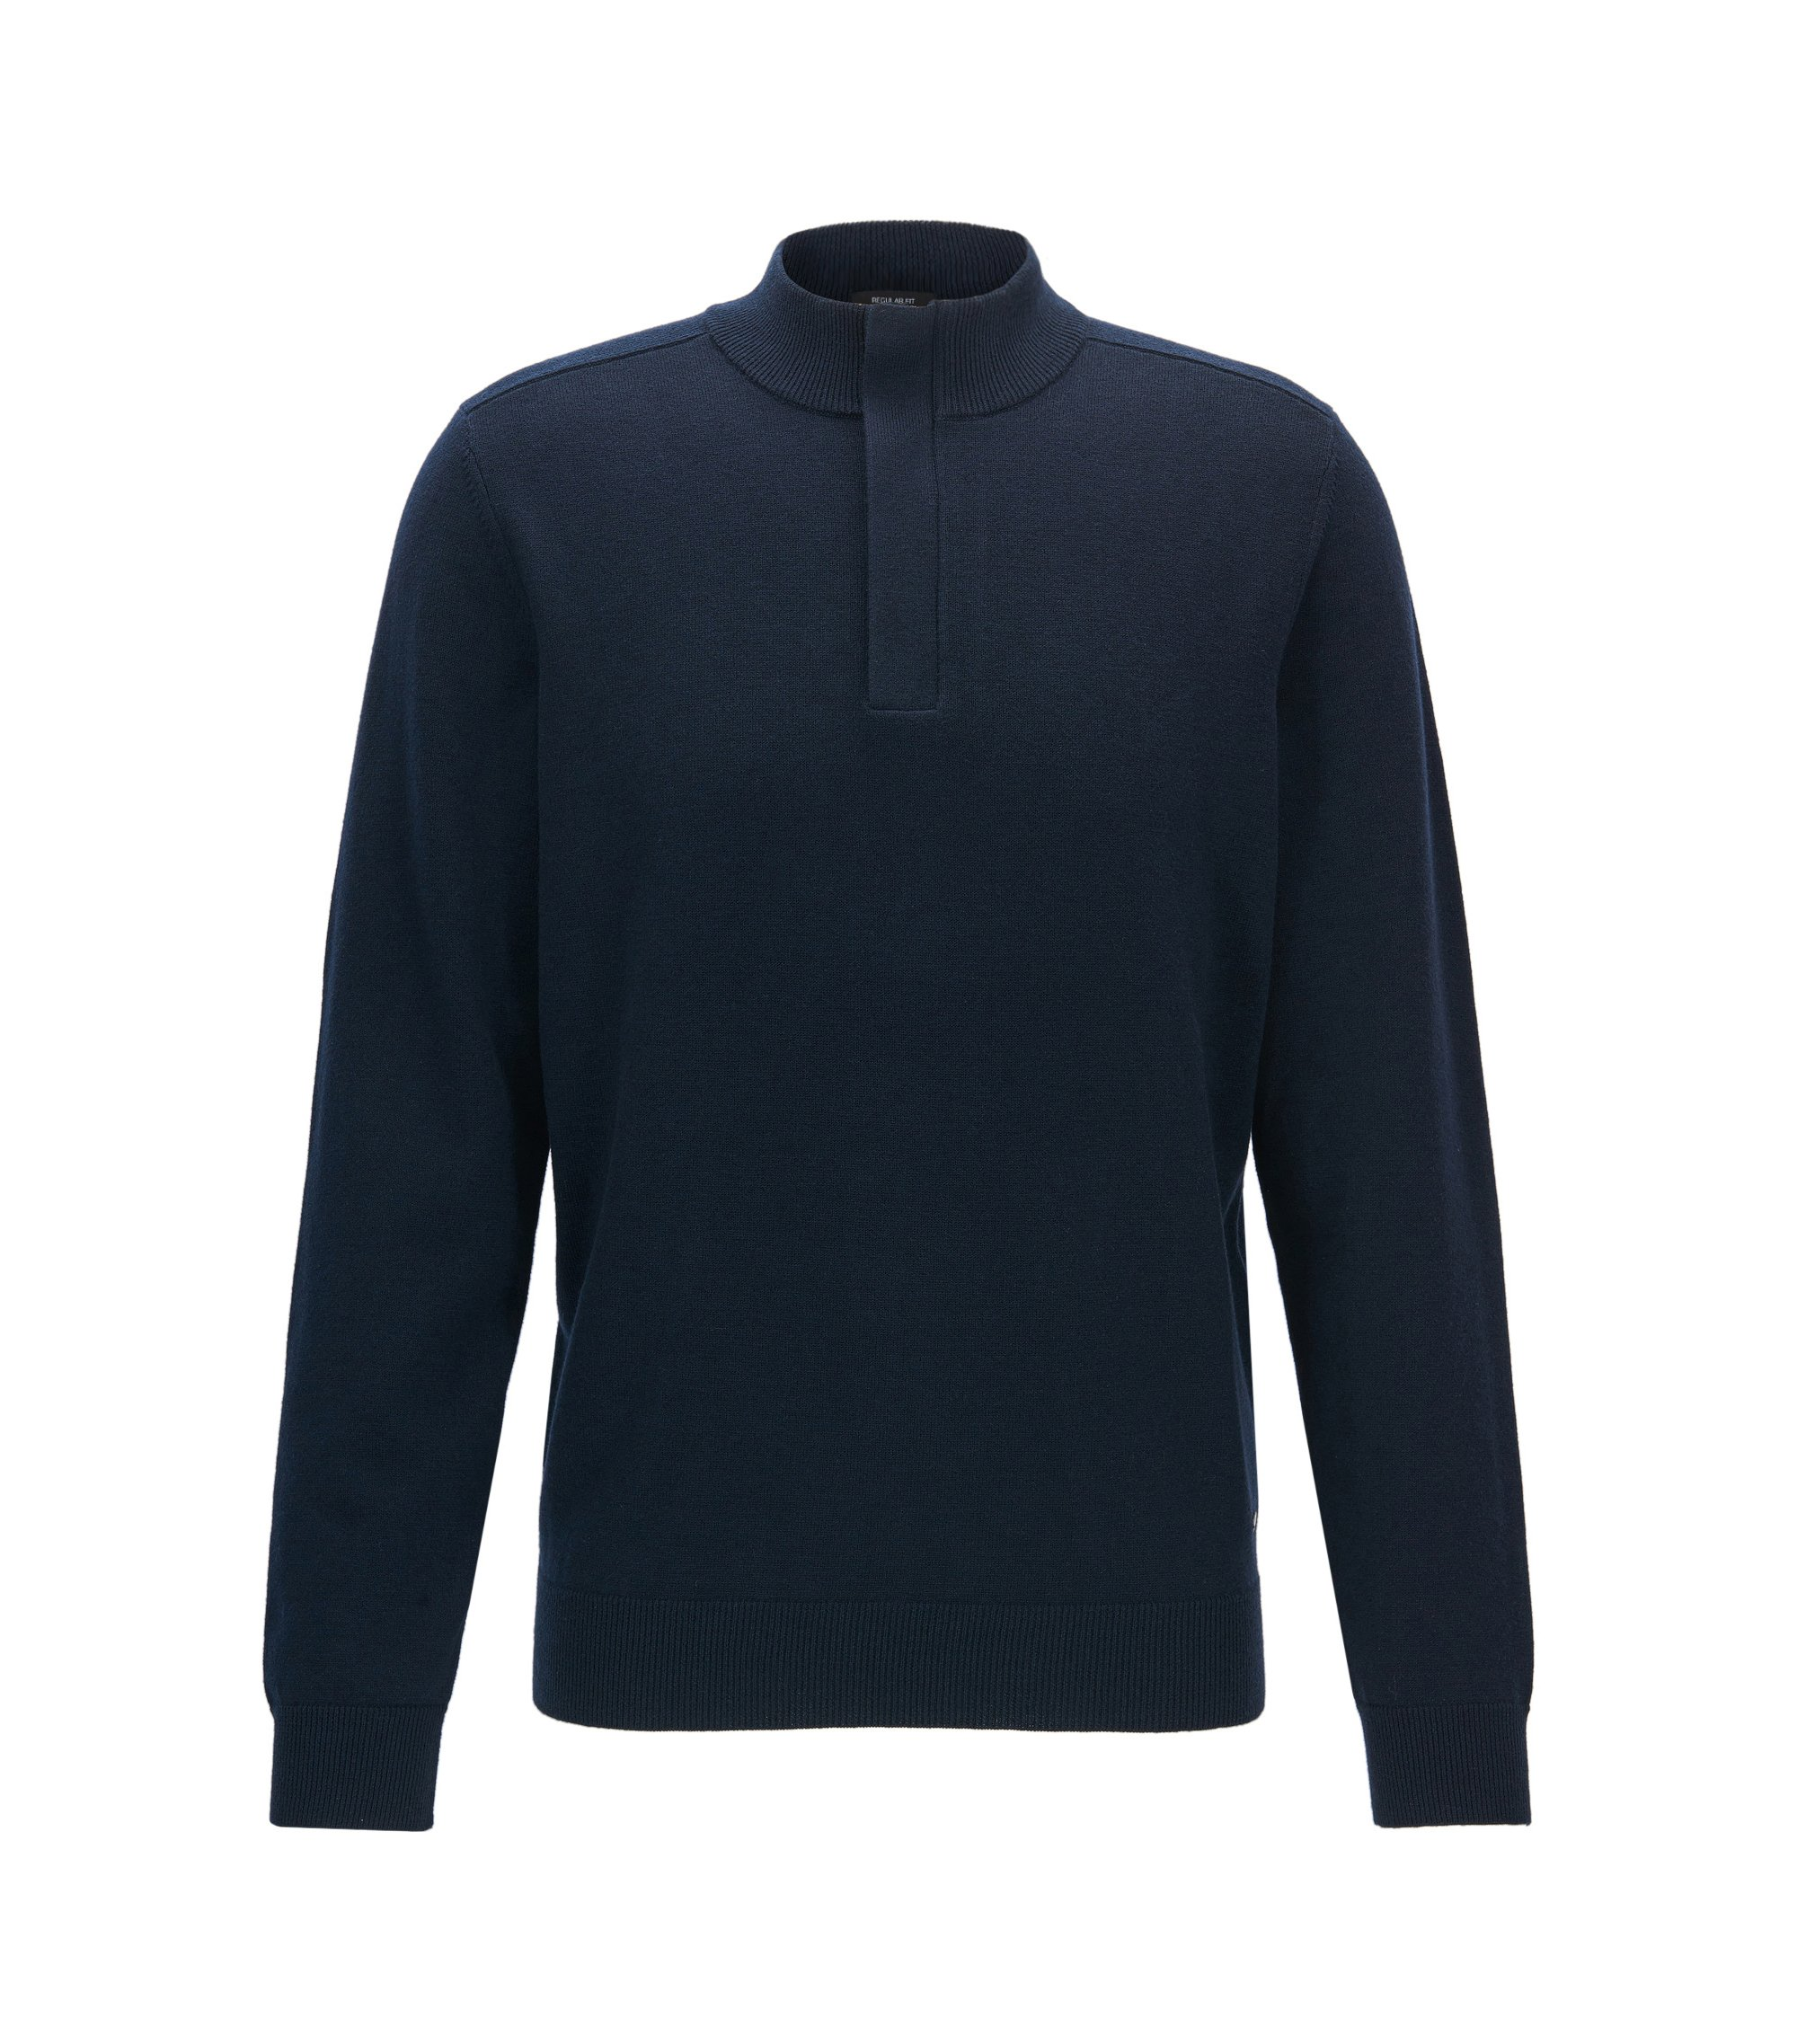 Cotton Virgin Wool Sweater | Napoleone, Dark Blue